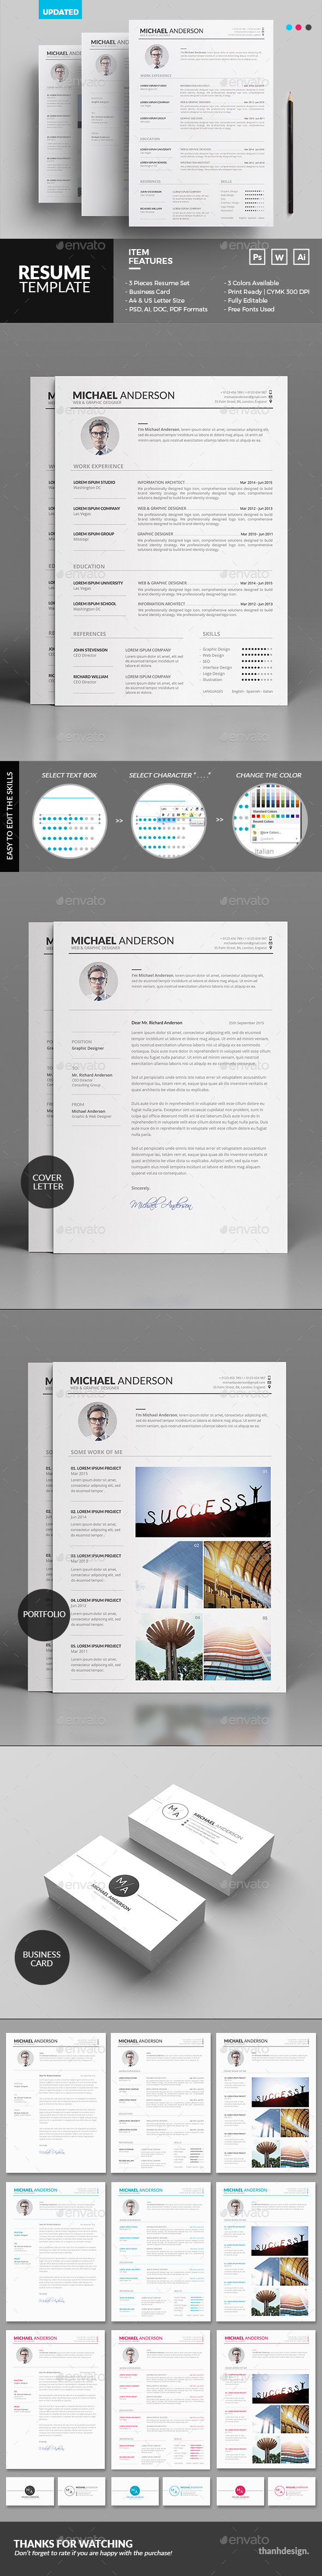 Cv And Resume Templates%0A Resume  Resumes Stationery